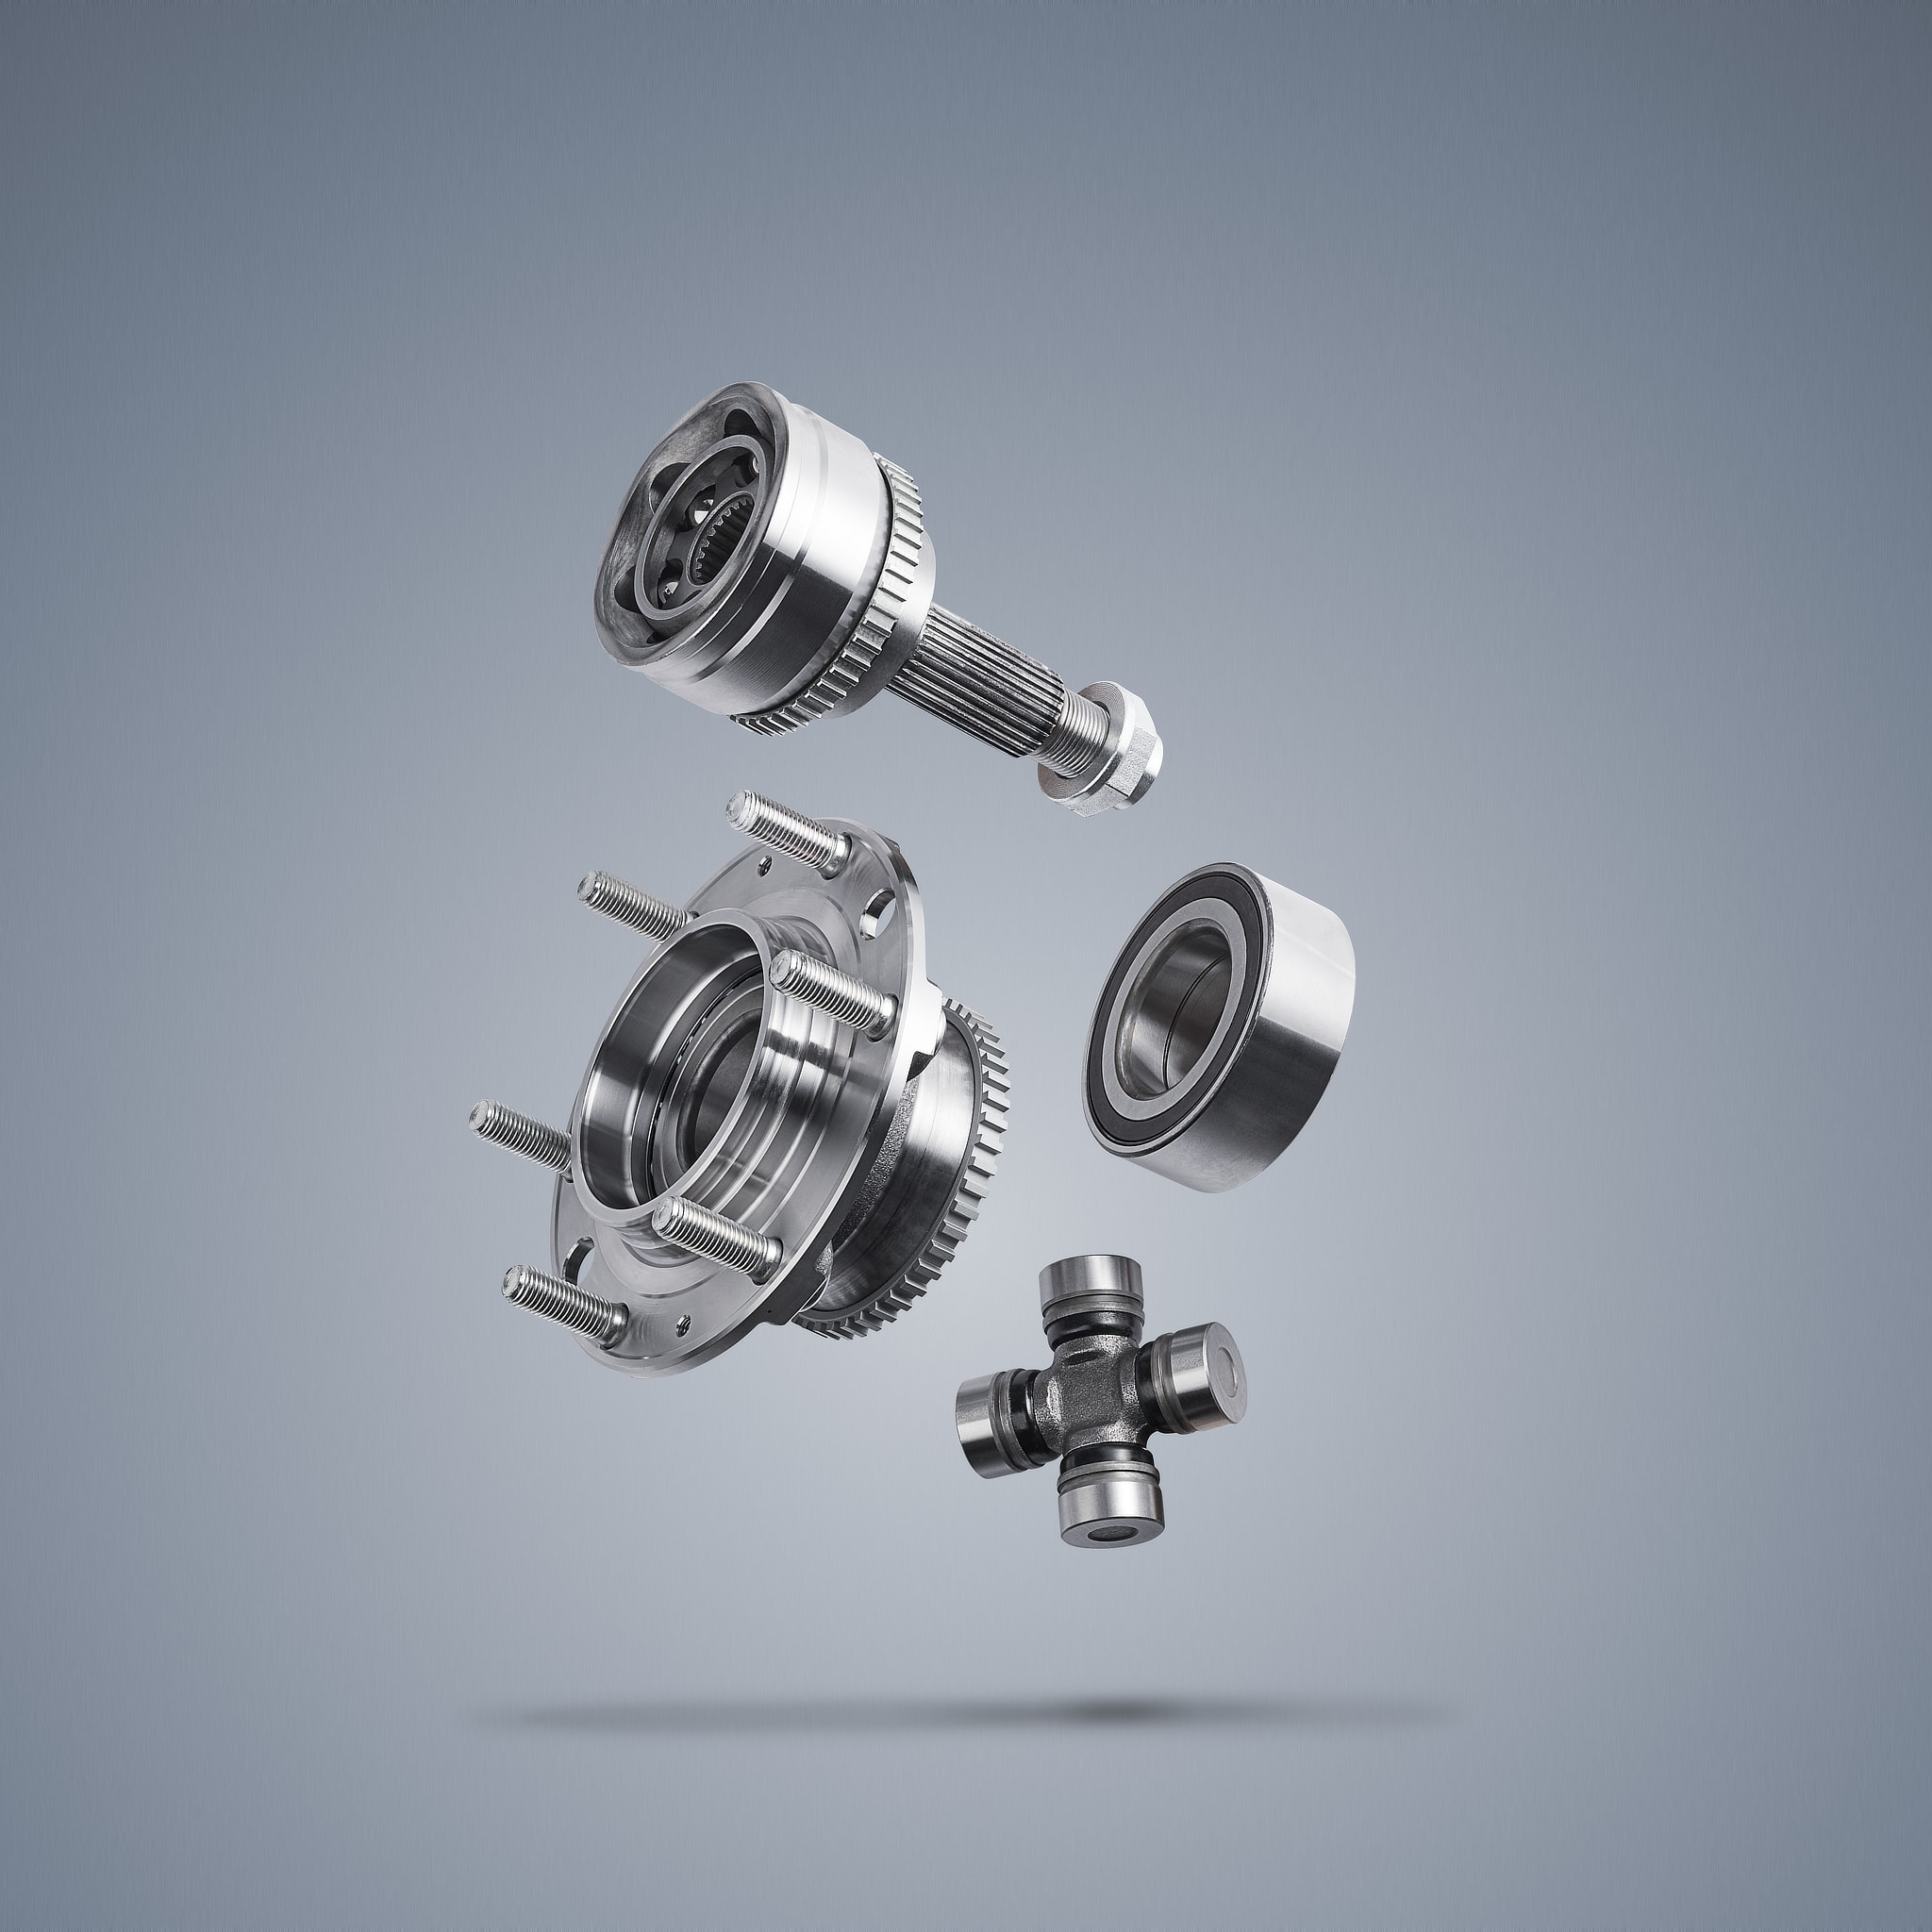 Advertising photography of several car parts